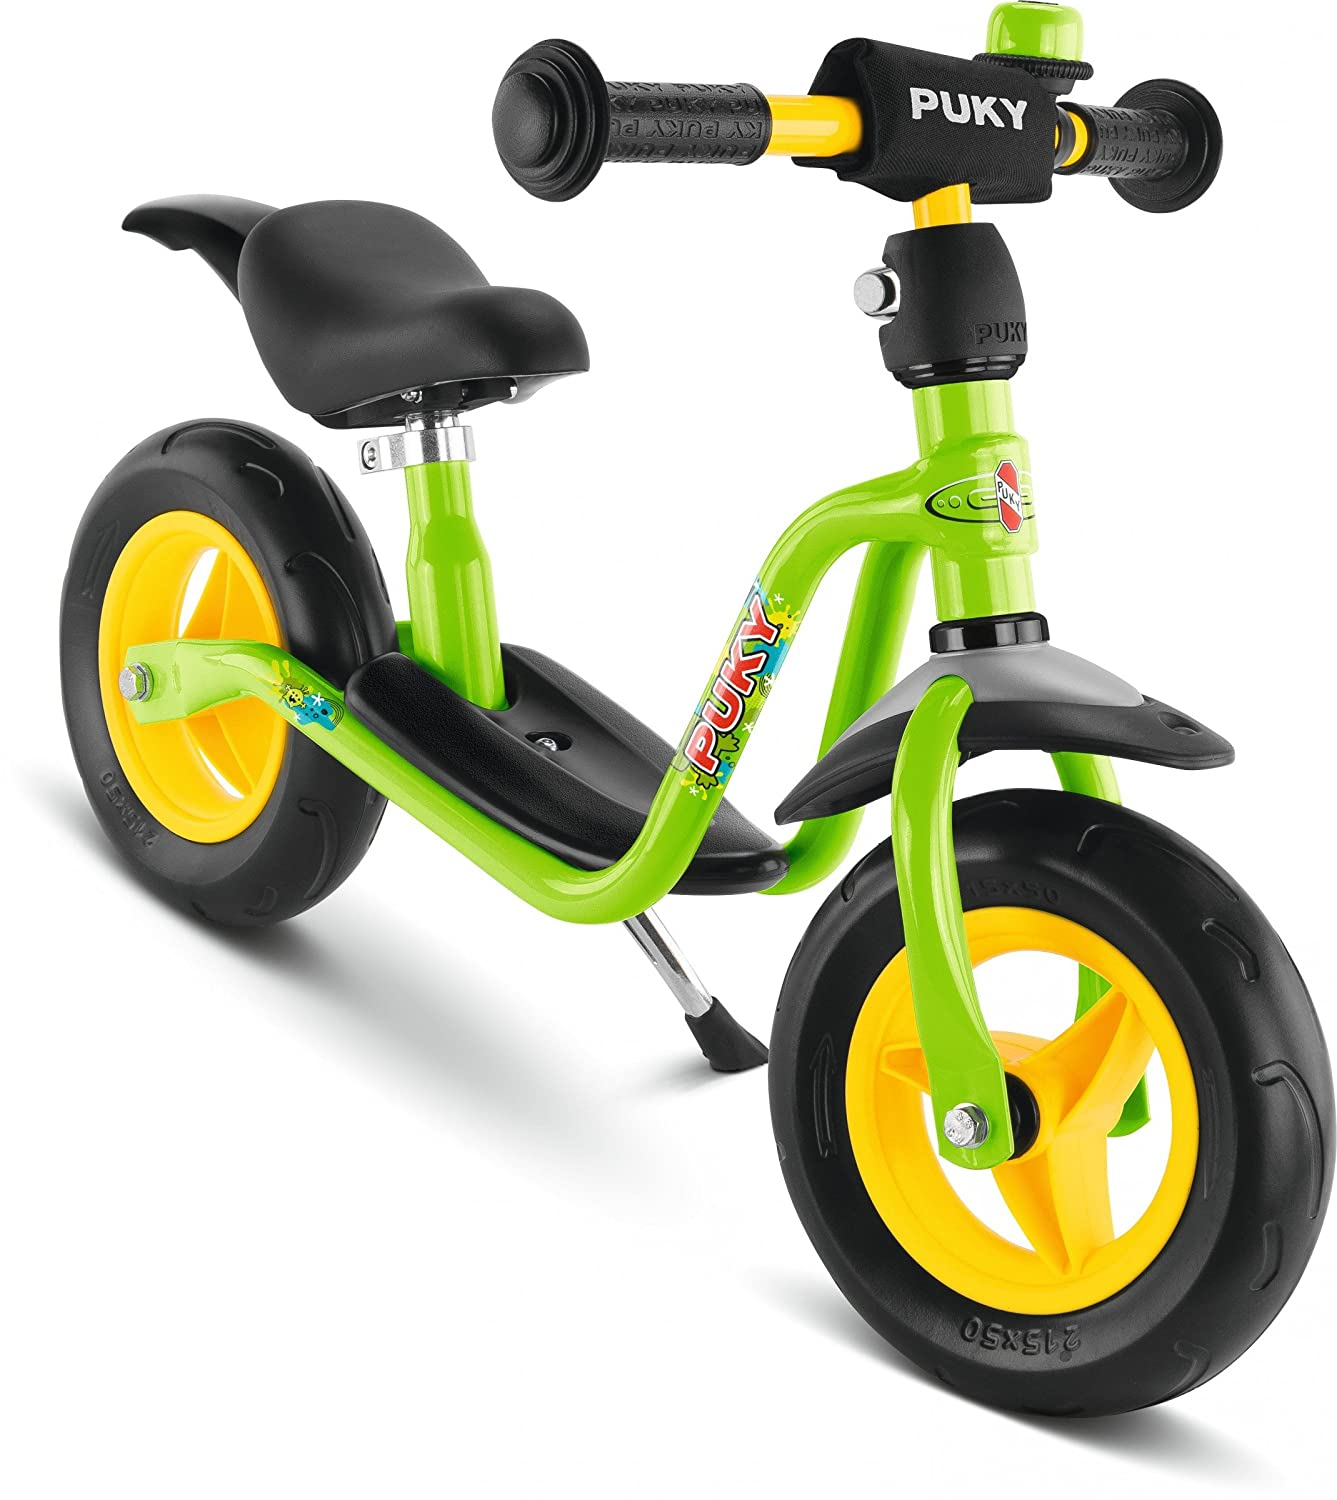 ffc52619835 Puky Unisex-Youth Lr M Plus Balance Bike, Kiwi, Suitable for children 2+  from 30-43cm (inseam) max 25kg: Amazon.co.uk: Sports & Outdoors